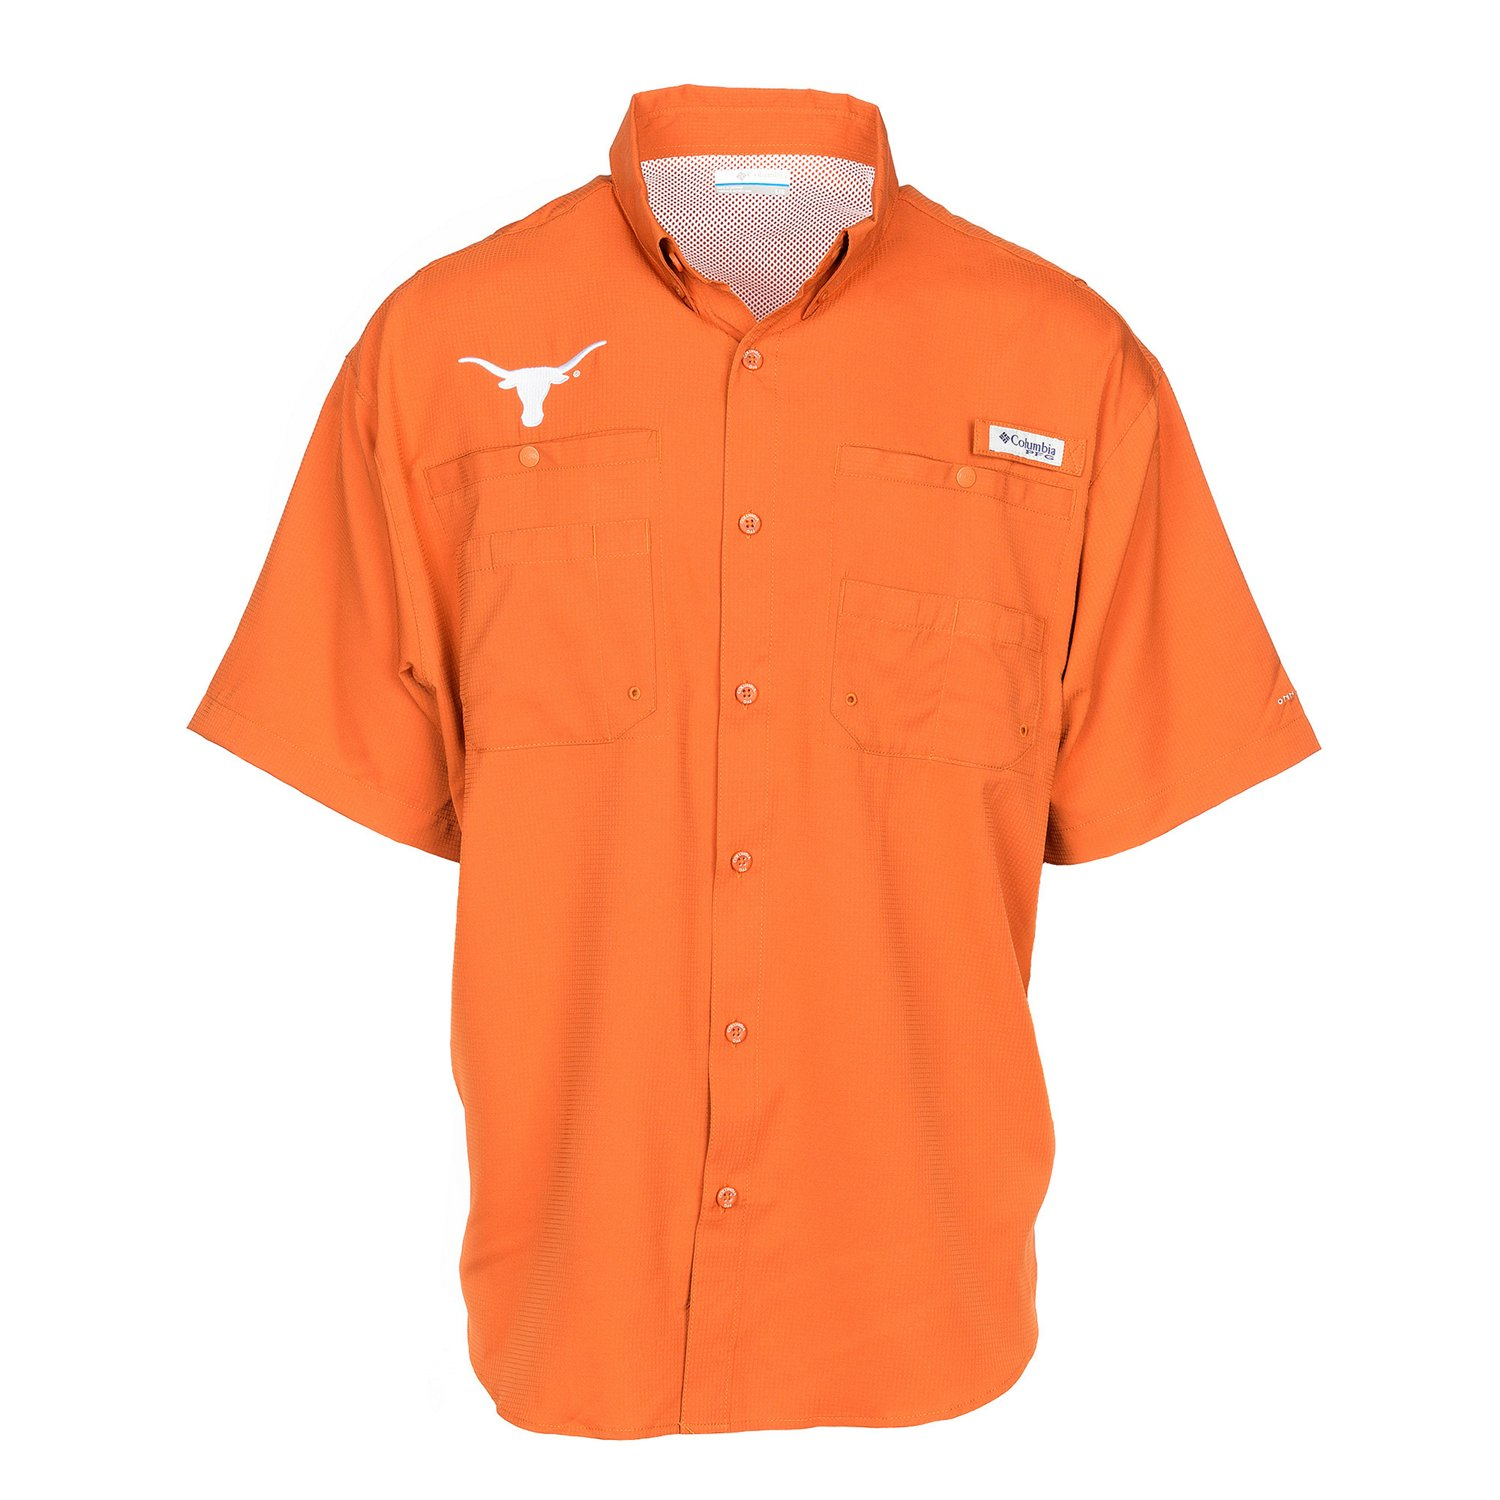 c24c52e31ecf Display product reviews for We Are Texas Men s University of Texas Tamiami  Short Sleeve Shirt